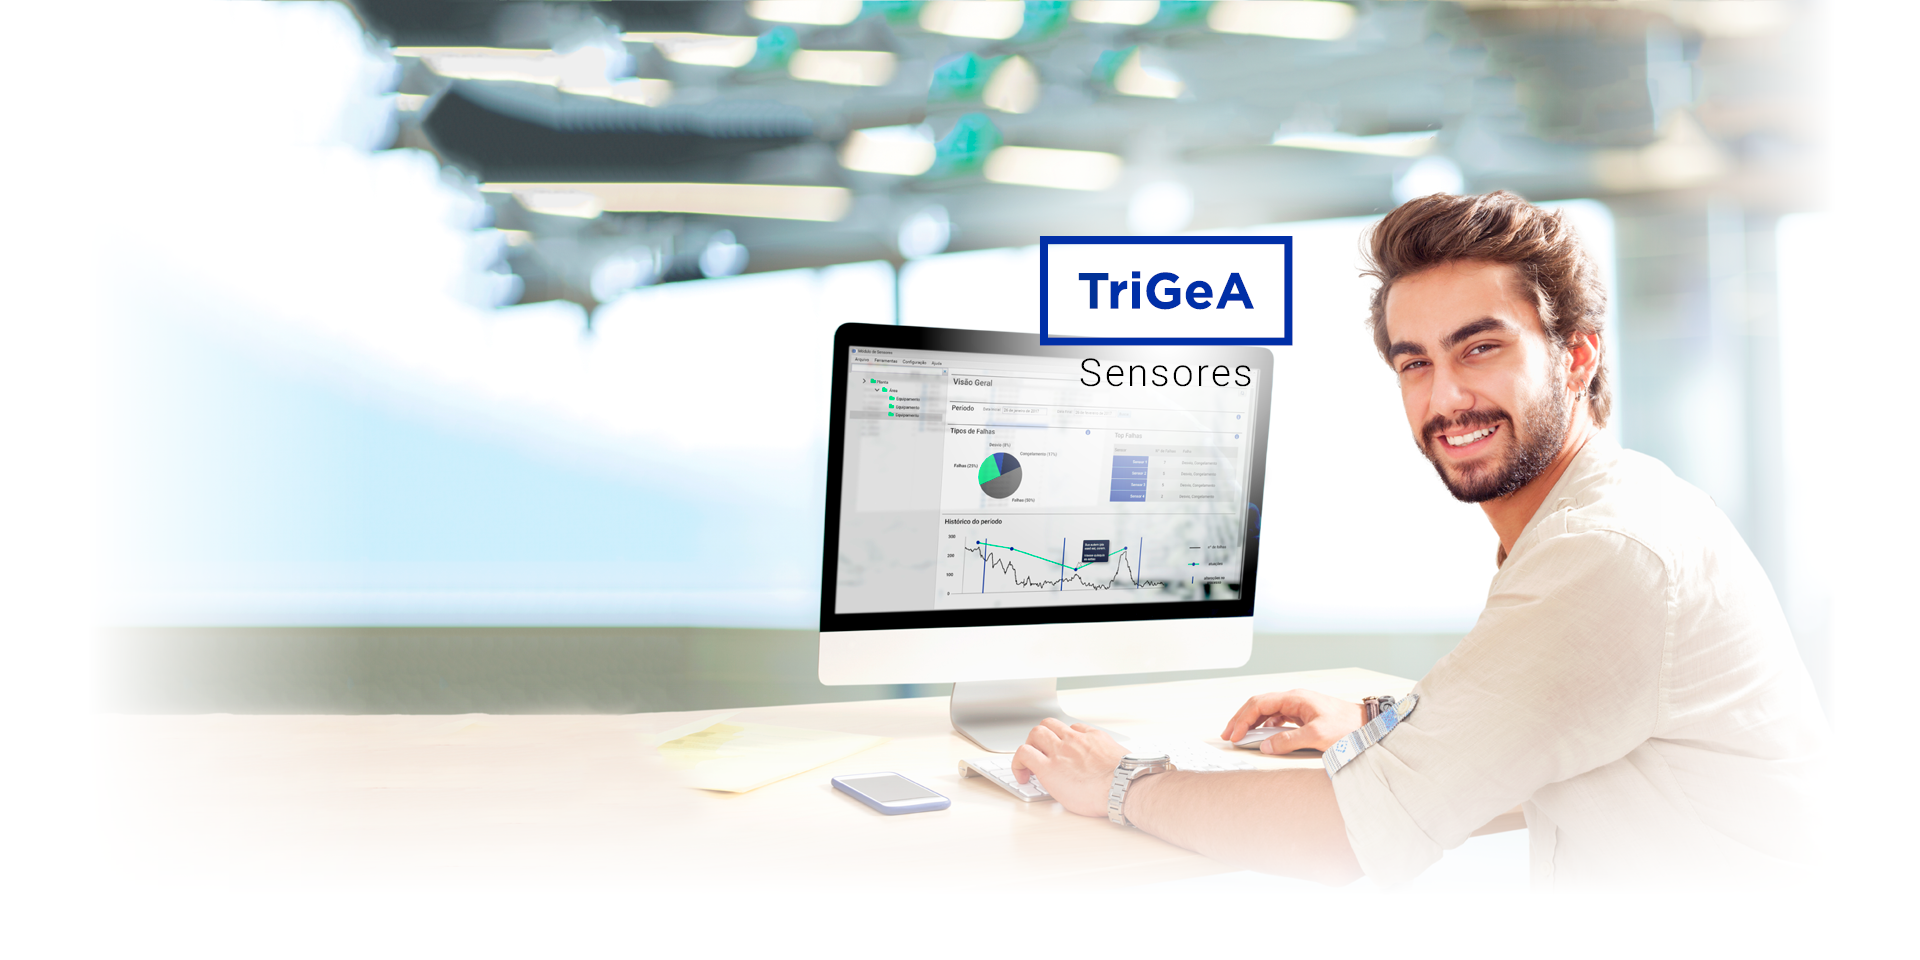 Trisolutions-TriGeA-Sensores-BANNER-Home